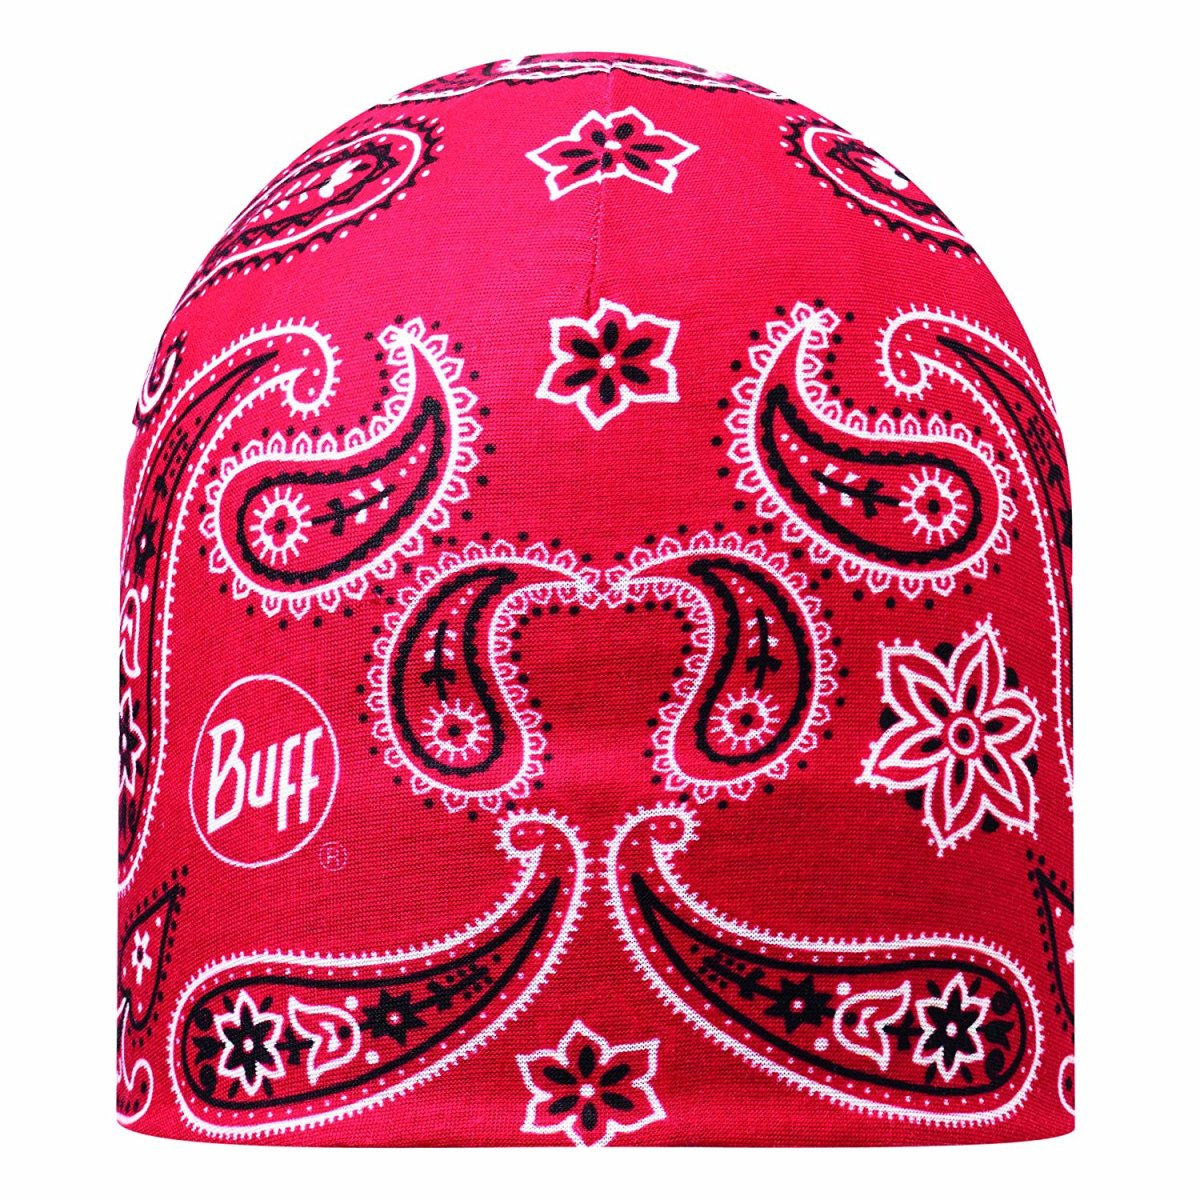 Шапка Buff Microfiber Reversible Hat cashmere red-black BU 108910.425.10.00